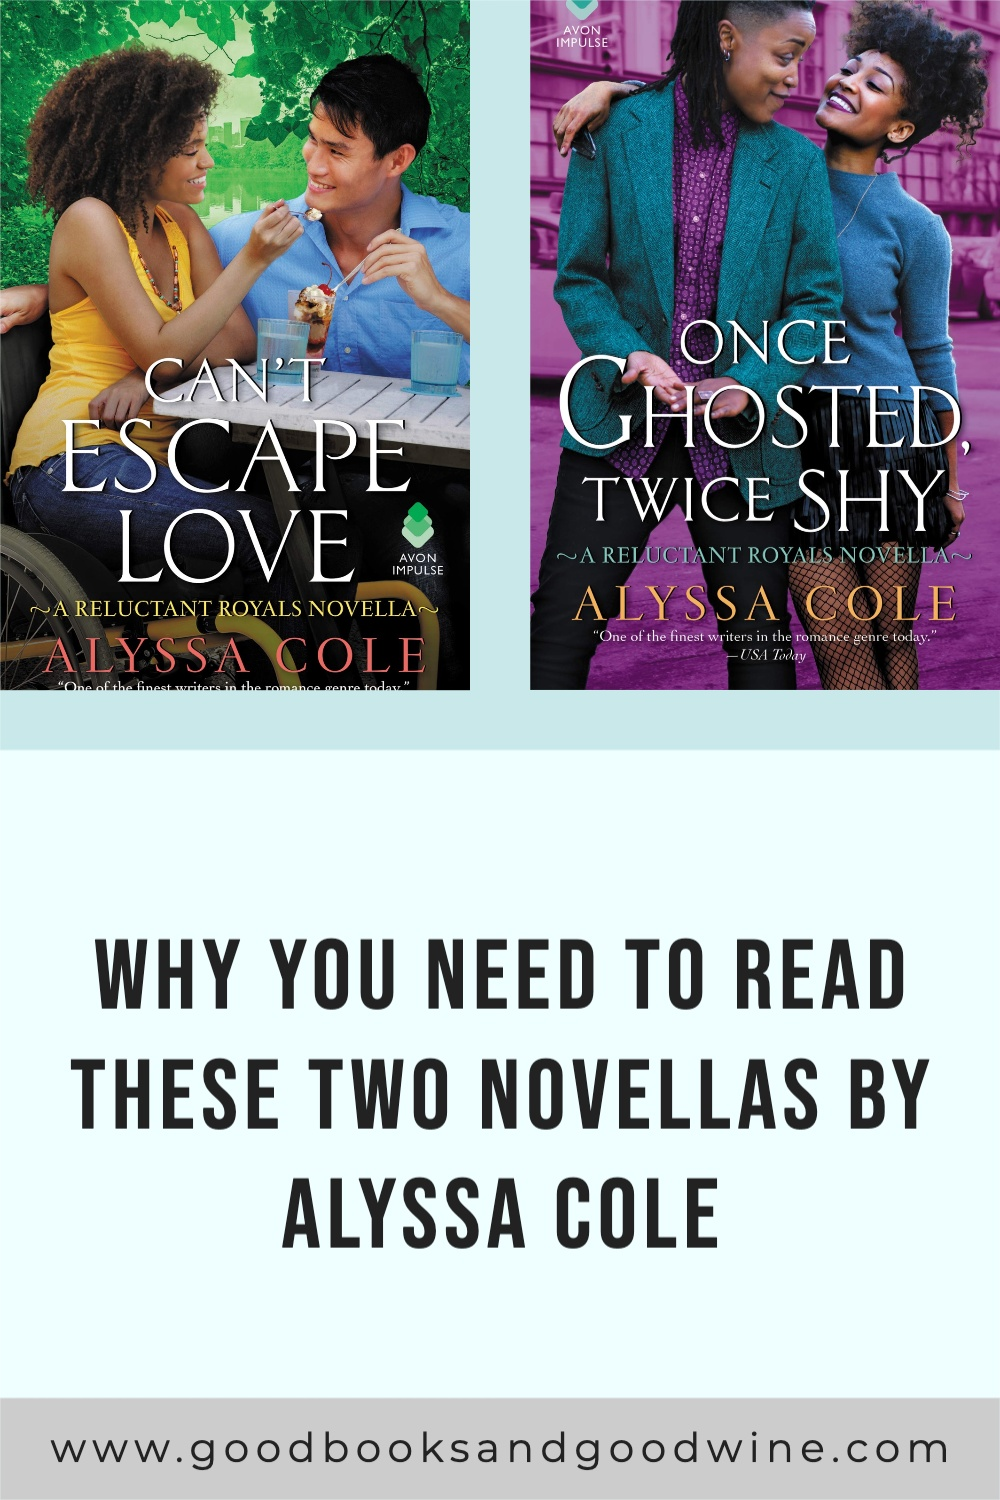 Alyssa Cole proves she is a master of her craft with her contemporary romance novellas Once Ghosted, Twice Shy and Can't Escape Love.